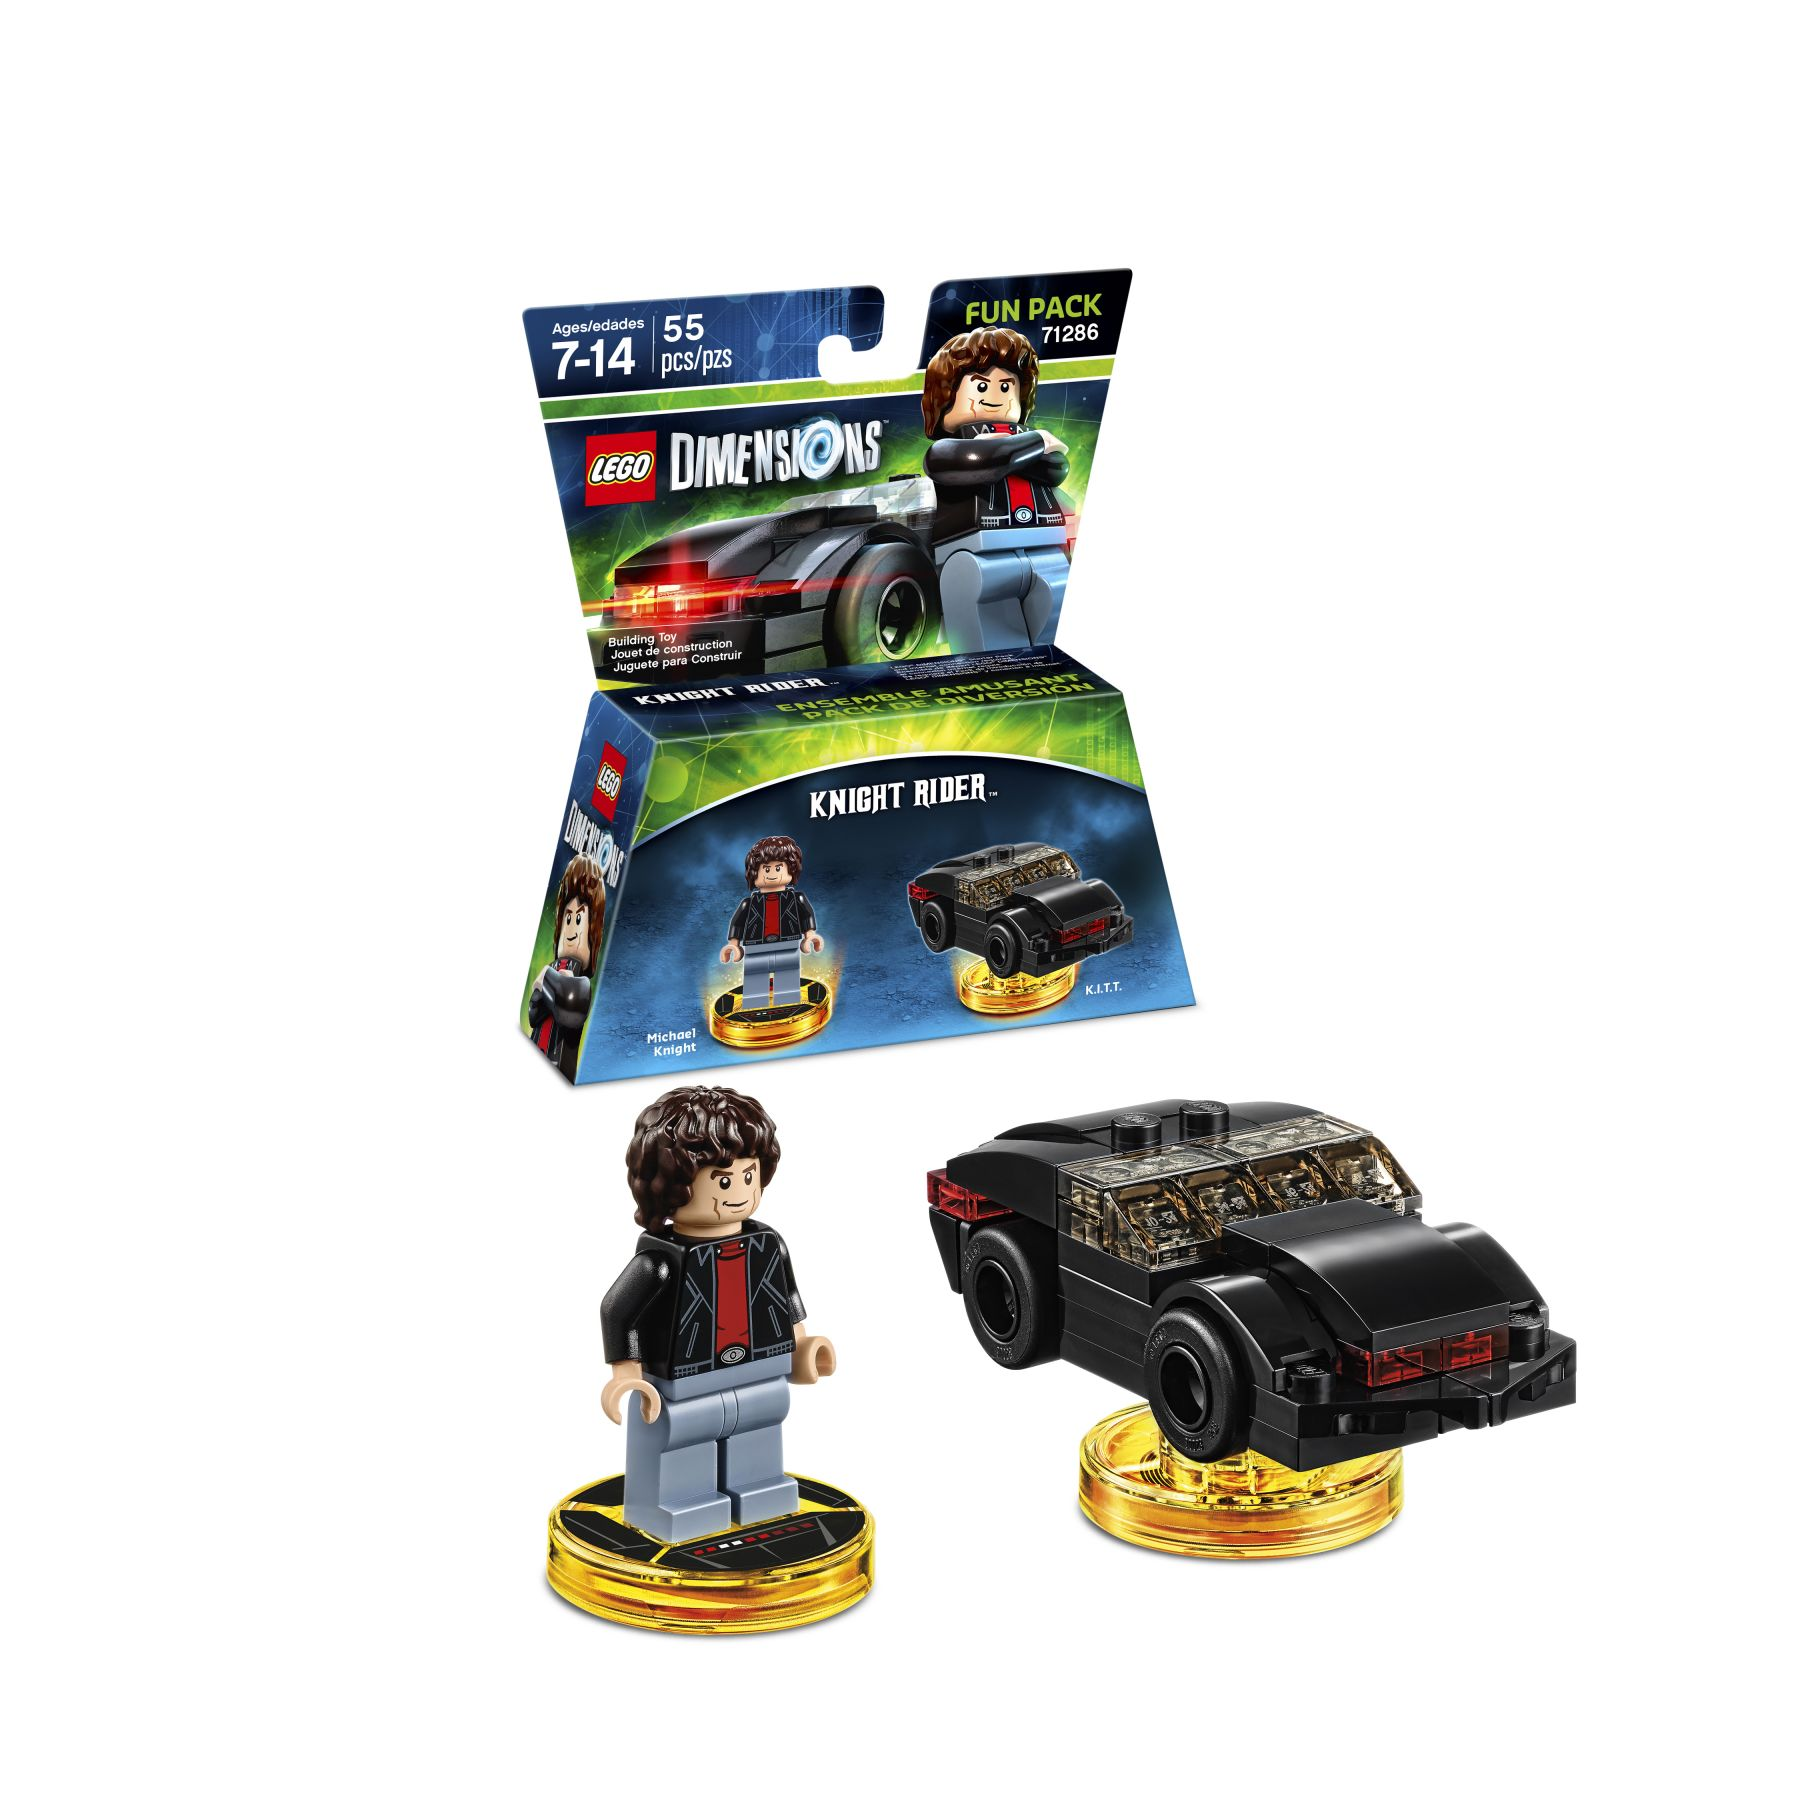 LEGO Dimensions 71286 Knight Rider Fun Pack